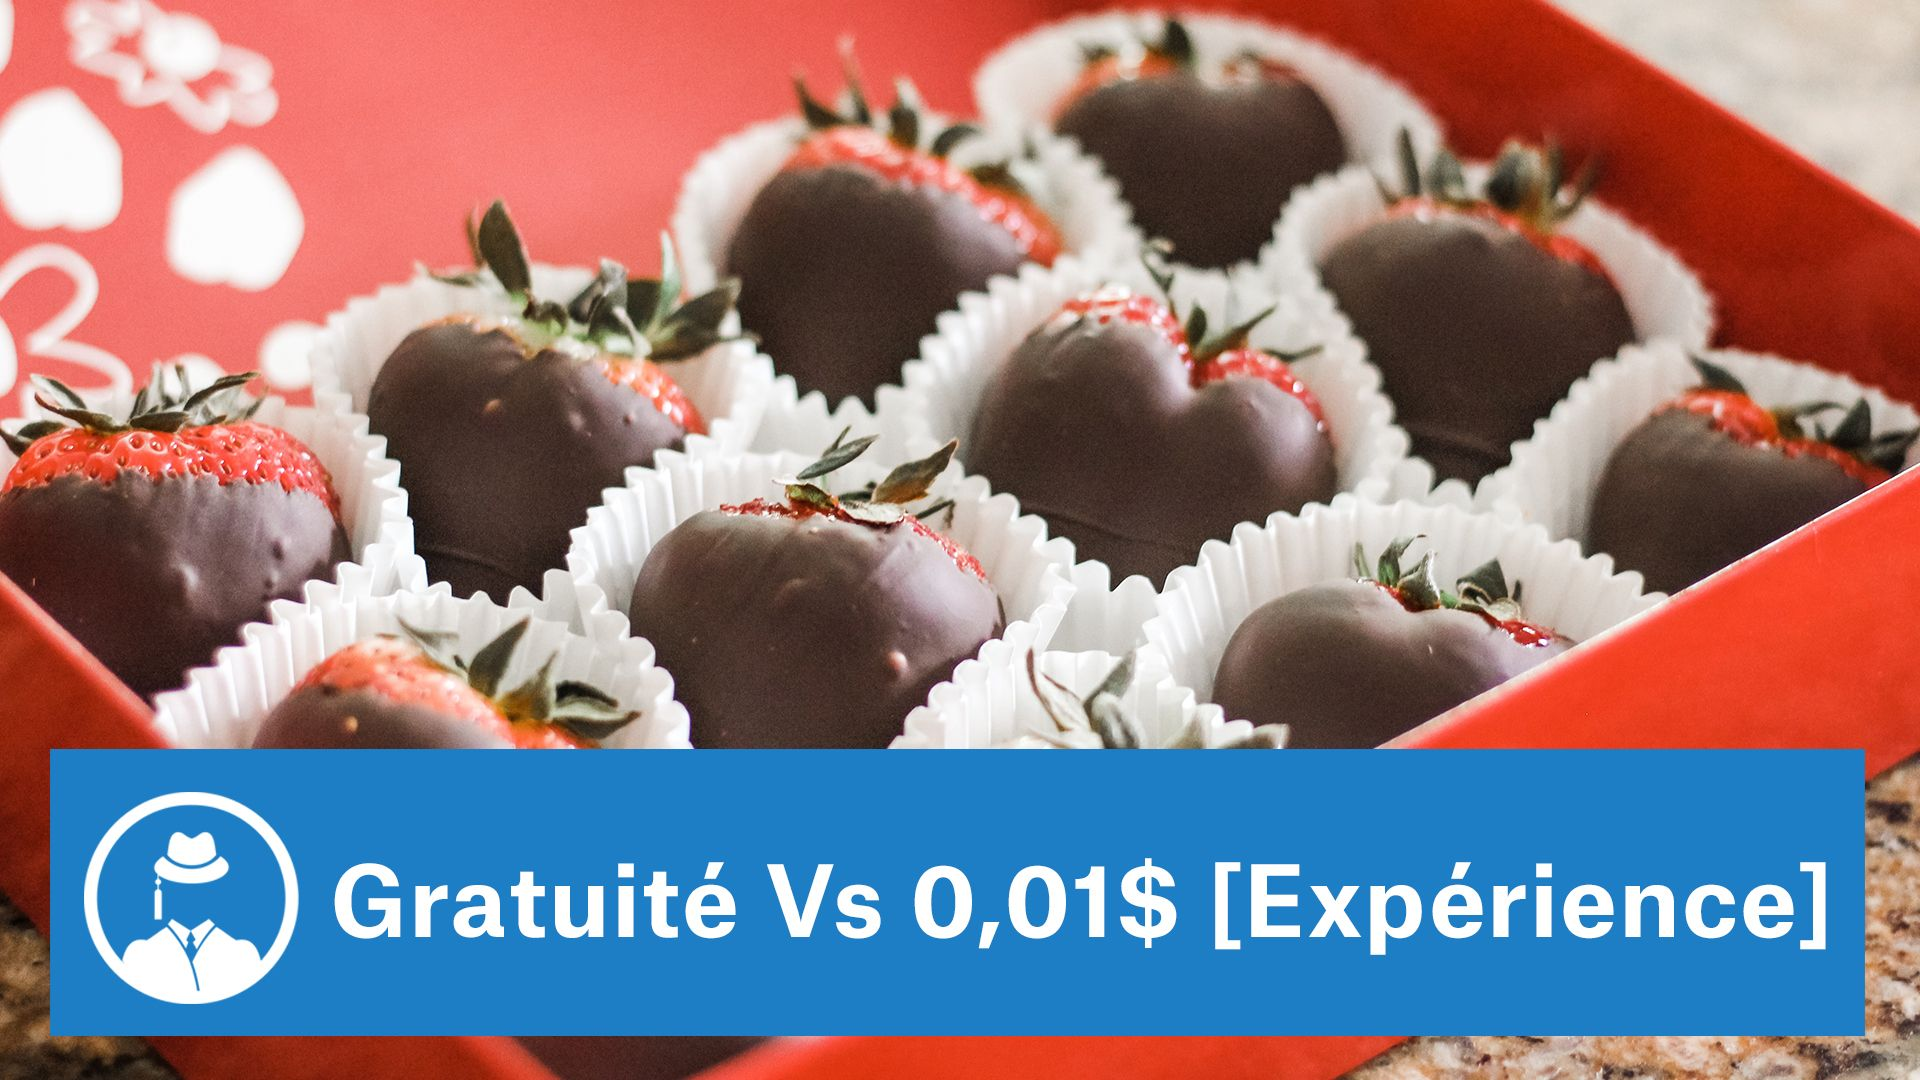 Gratuité Vs 0,01$ [Expérience] #GrowthHacking #WebMarketing #FormationGrowthHacking #CentreDeFormationFrance #TunnelAARRR #AARRR #SocialMedia #CommunityManagement #SEO #MarketingDigital #SiteWeb